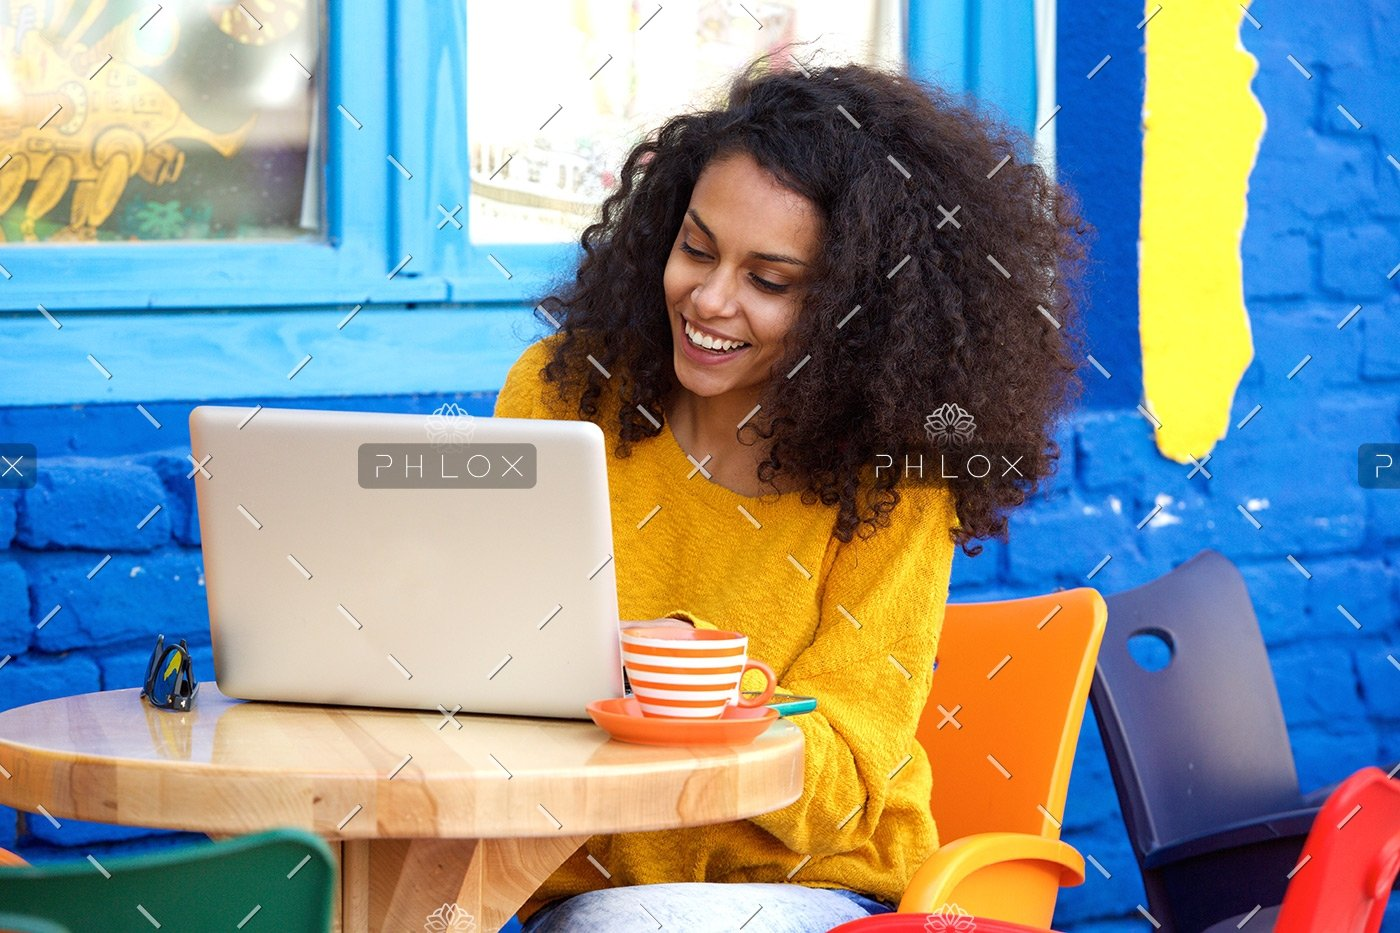 demo-attachment-65-happy-young-woman-sitting-at-outdoor-cafe-using-PFFBJ93